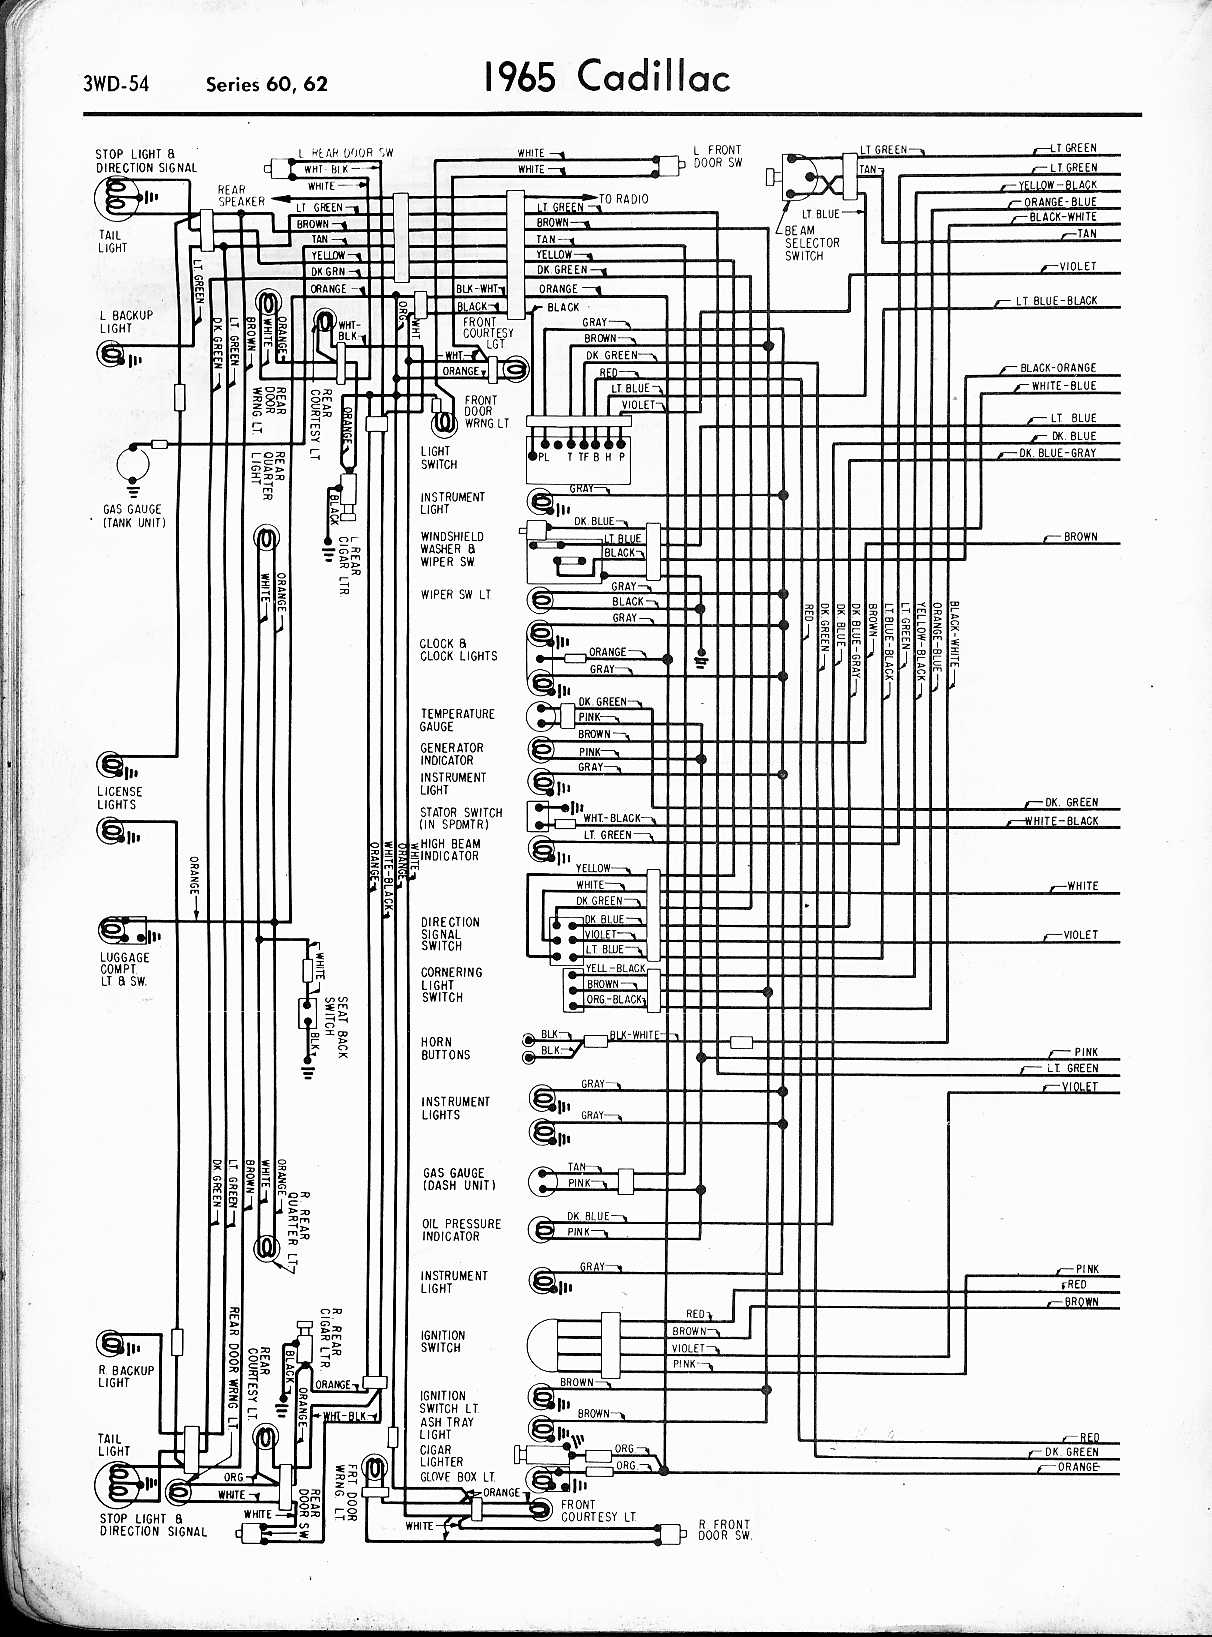 hight resolution of 1963 cadillac spark plug wire diagram wiring diagram sheetcadillac wiring diagrams 1957 1965 1963 cadillac spark